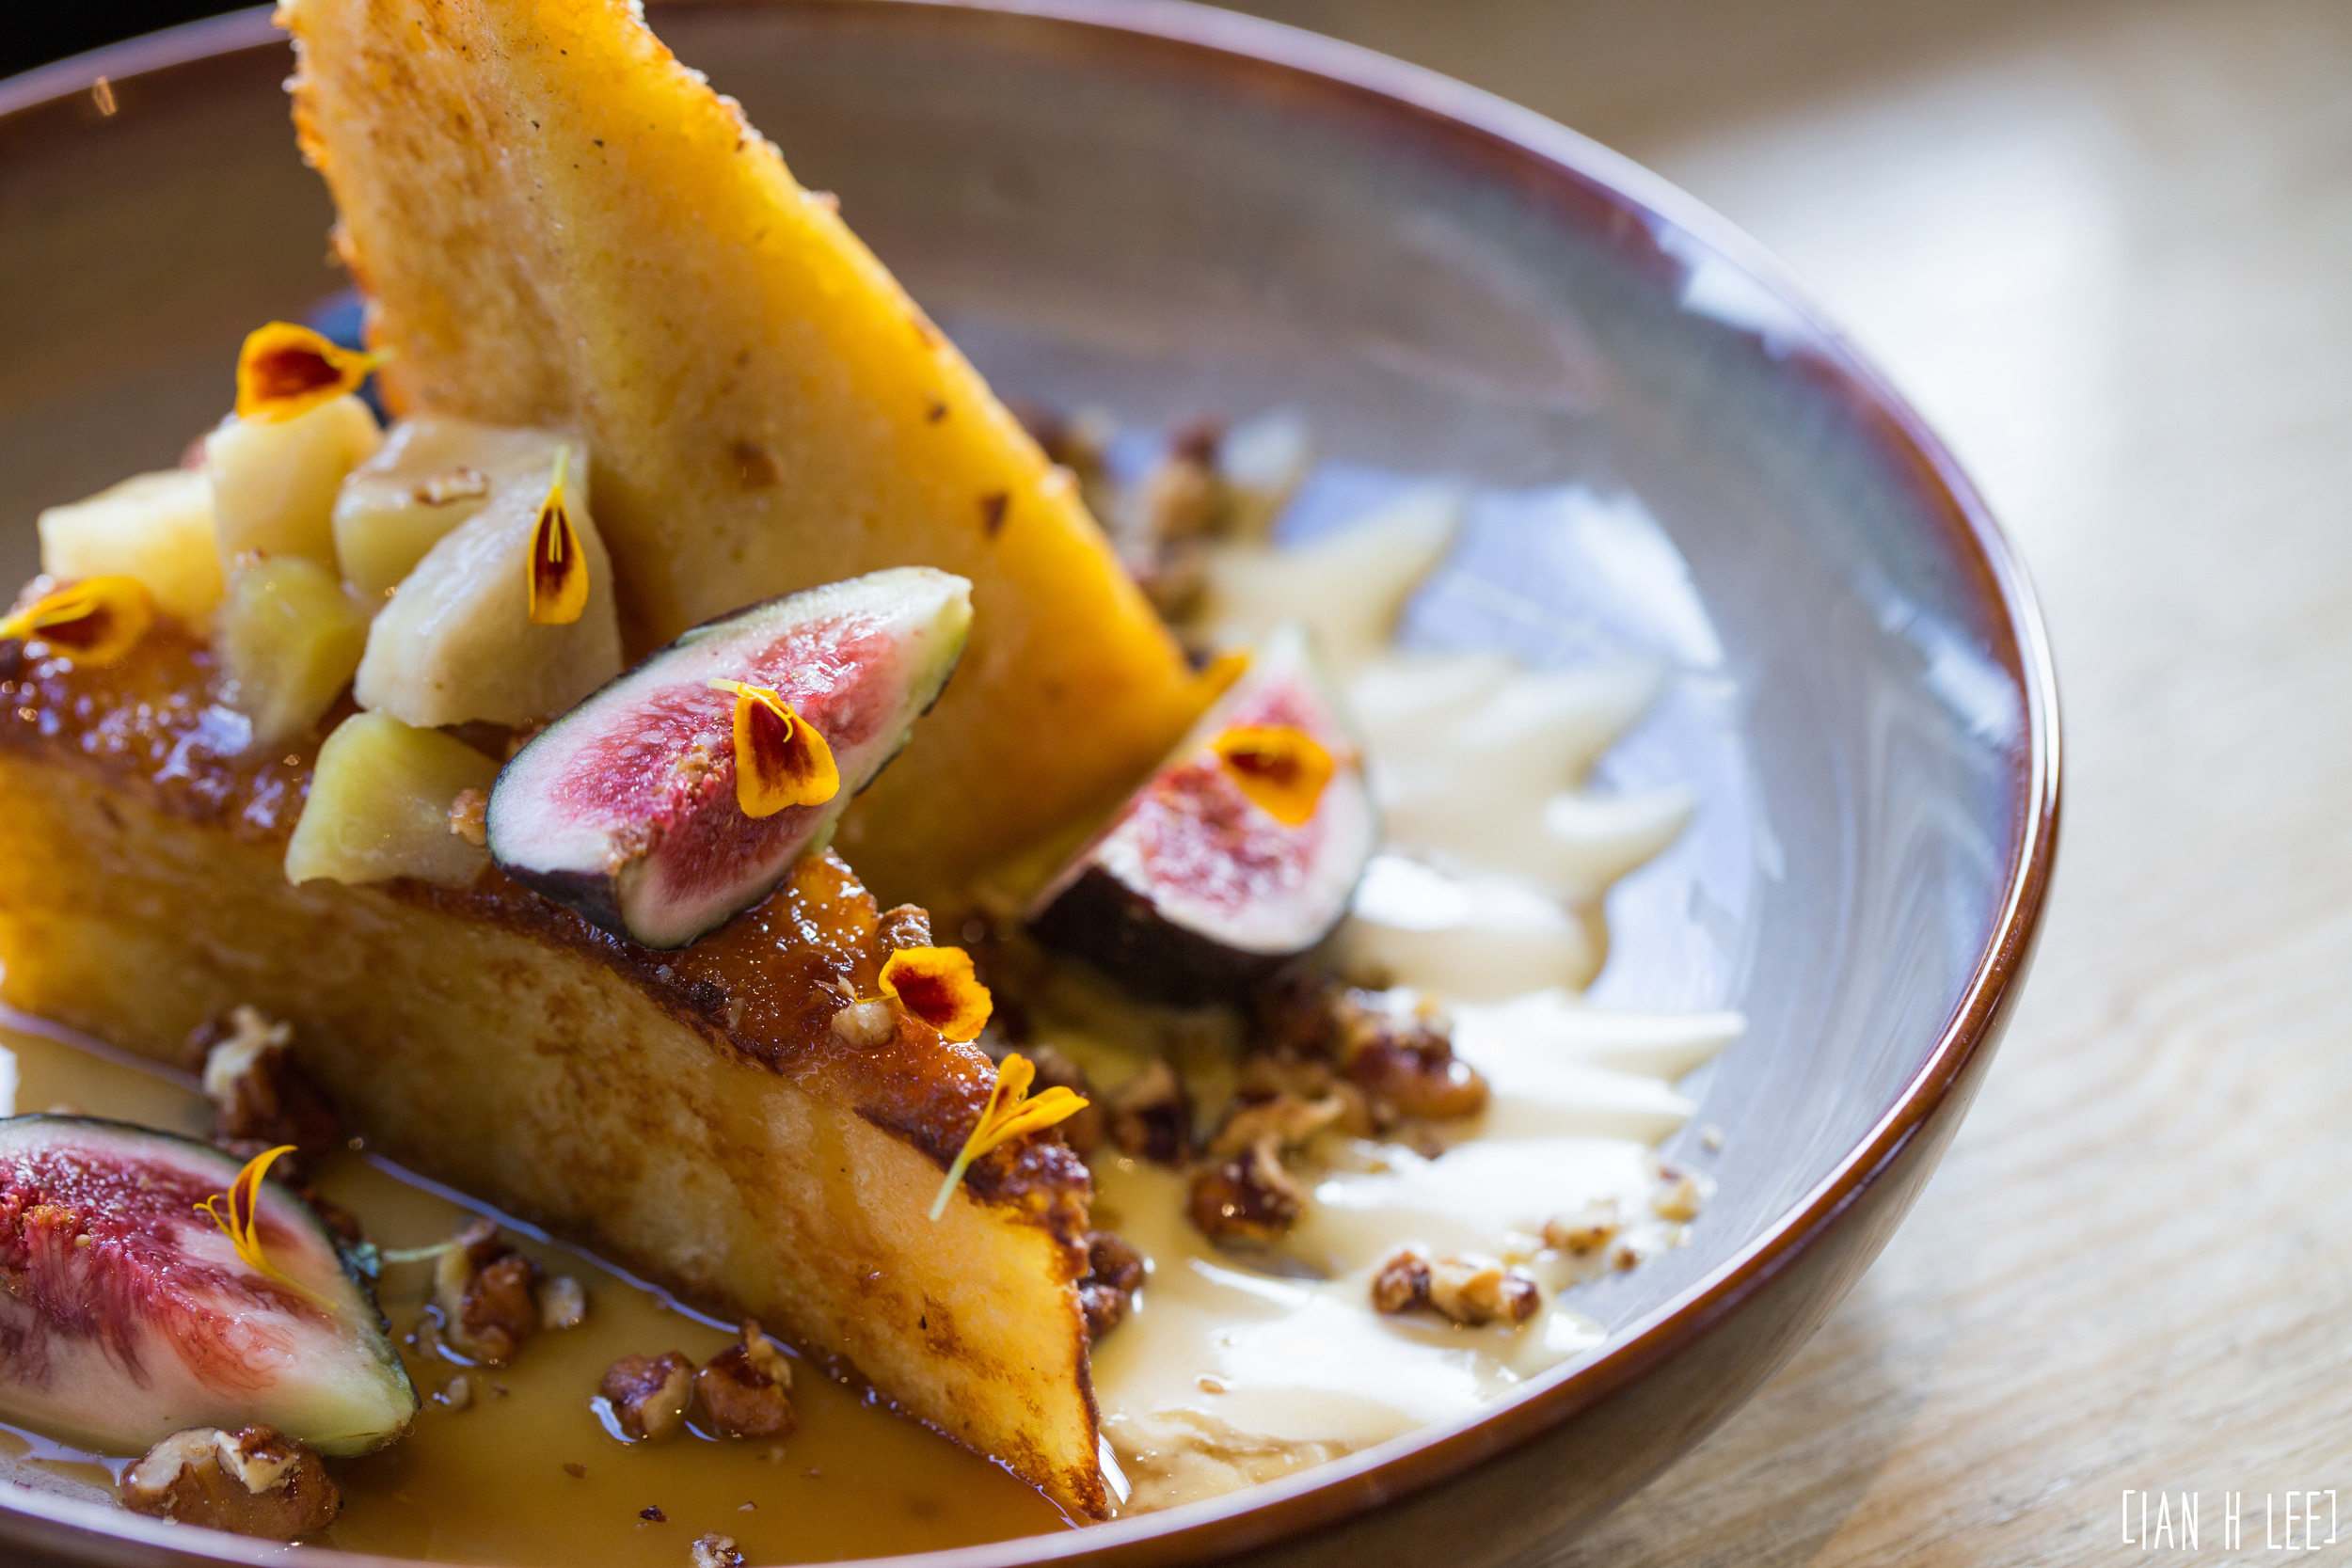 [Ian H Lee] Photography || Commercial - Melbourne :: French Toast 2.jpg